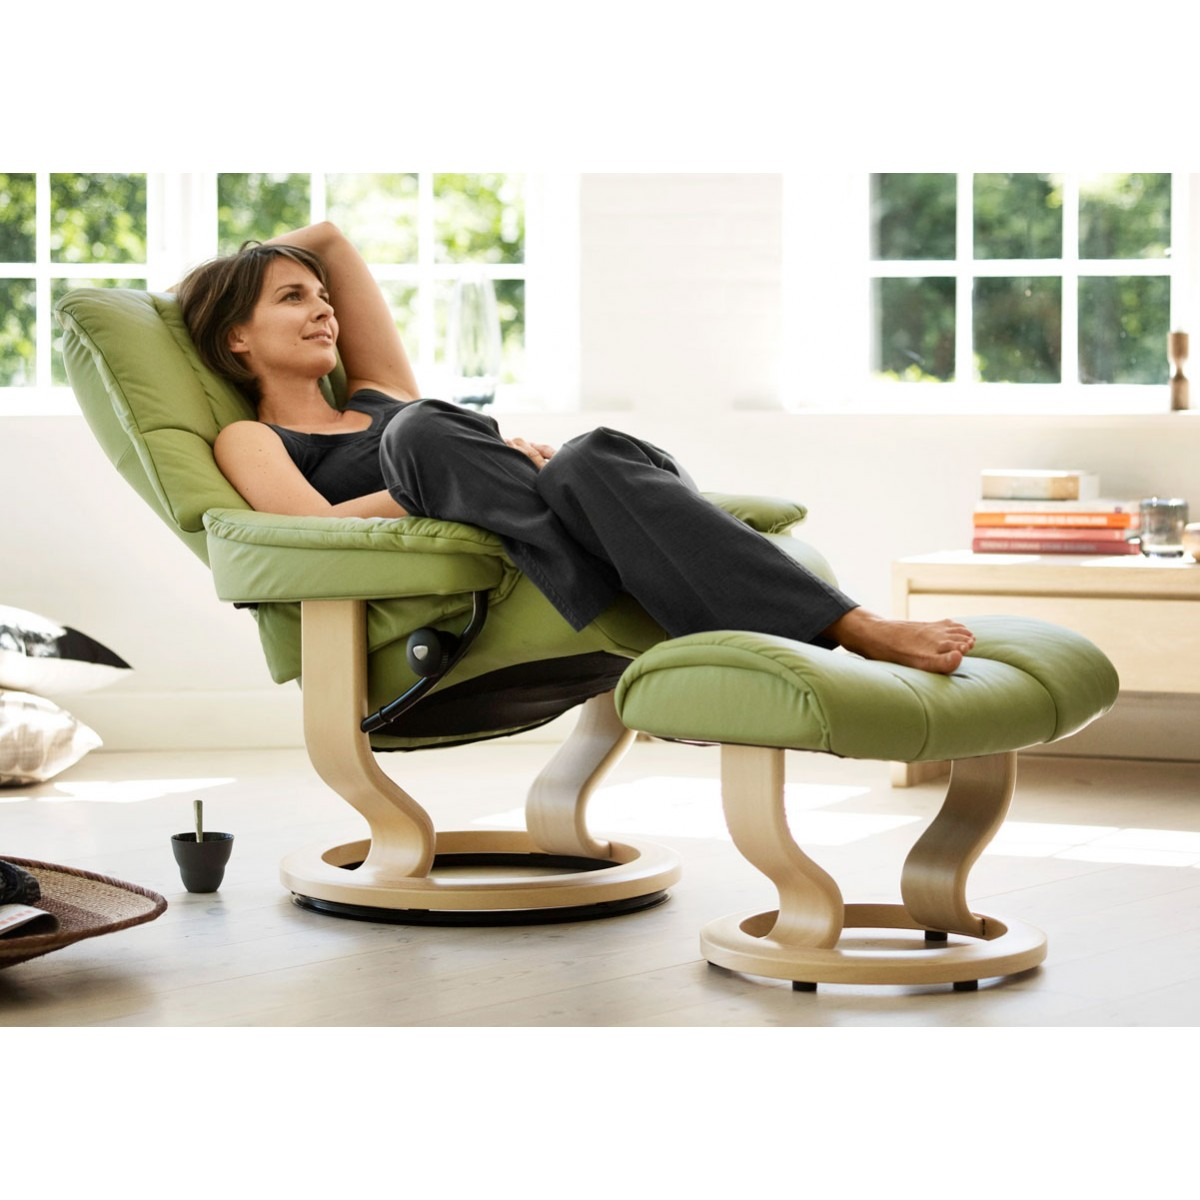 Stressless mayfair classic recliner ottoman from 2 195 for Stressless sessel modelle